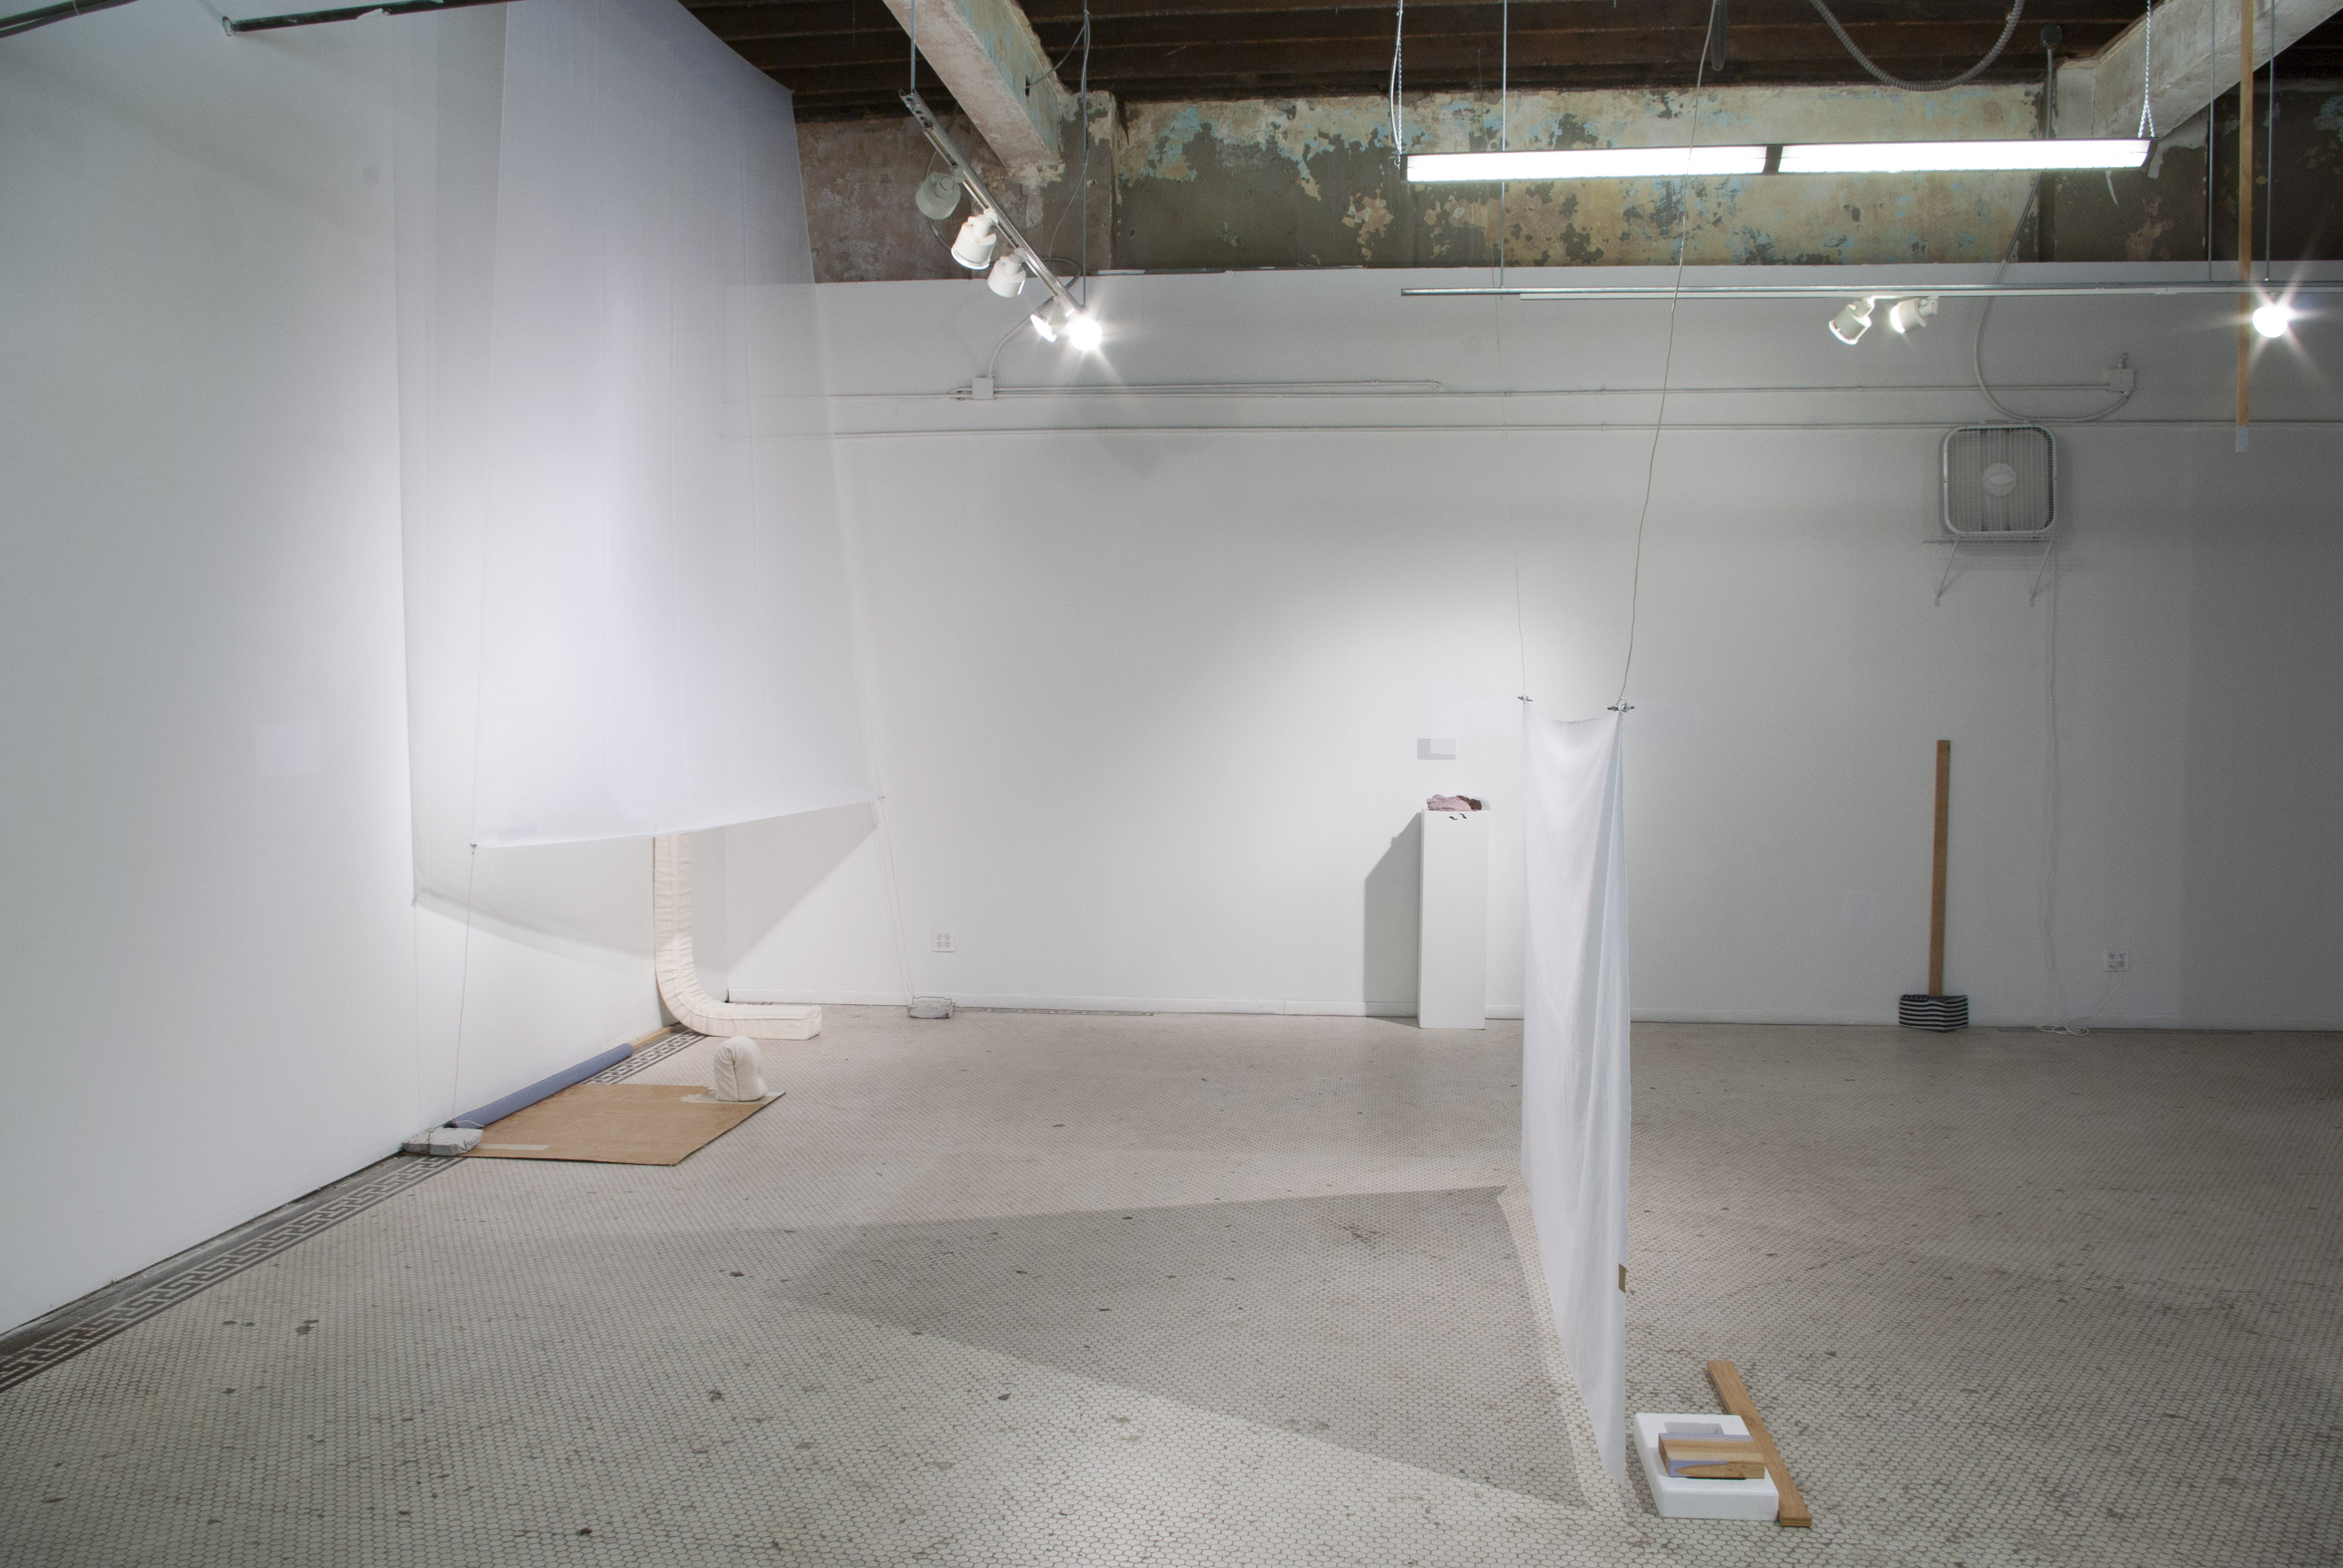 Minimalisms' Spurious Distractions in a Collaborative Installation